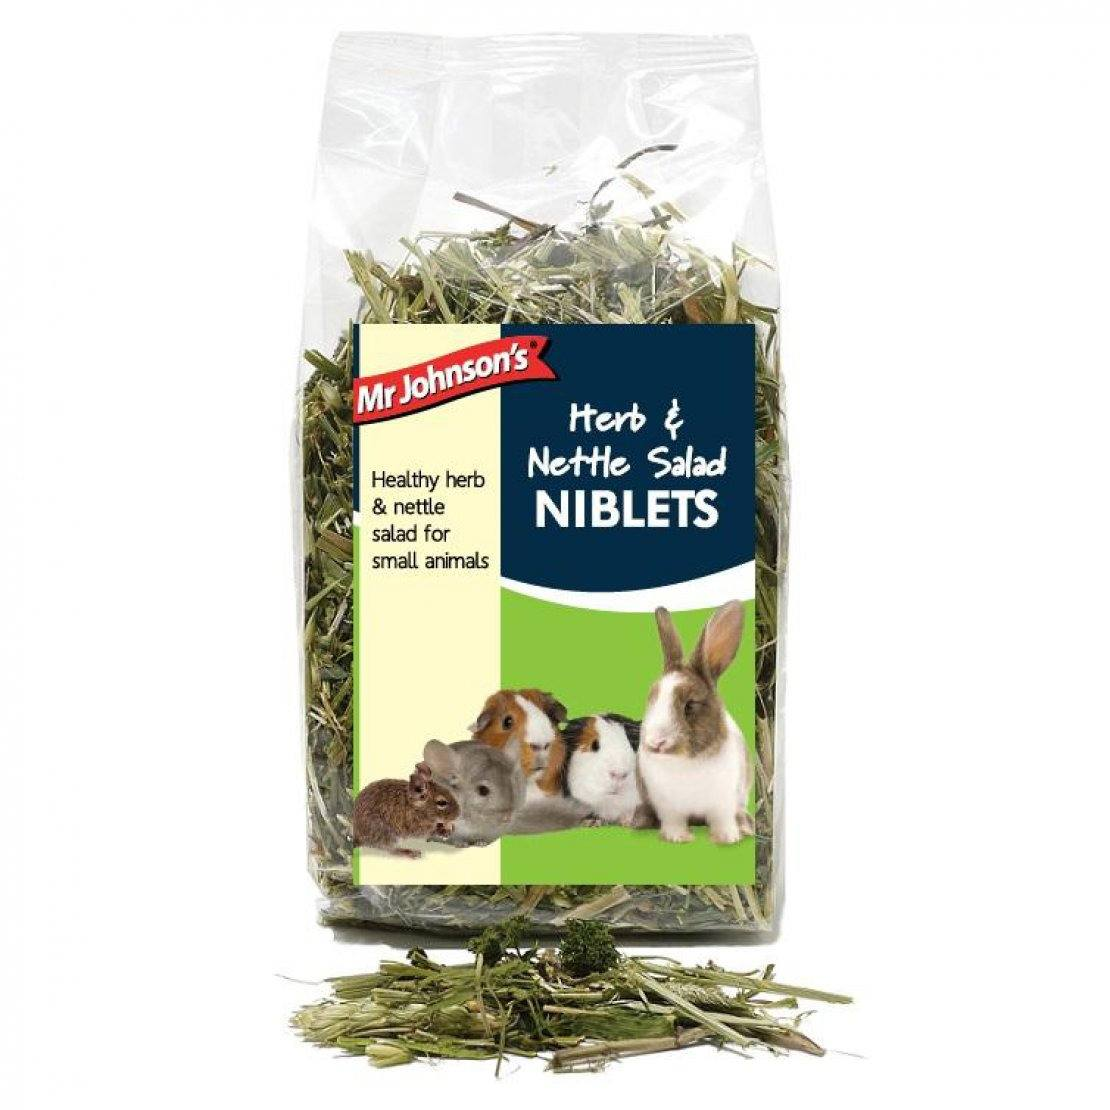 Mr Johnson's Herb and Nettle Salad, 100g